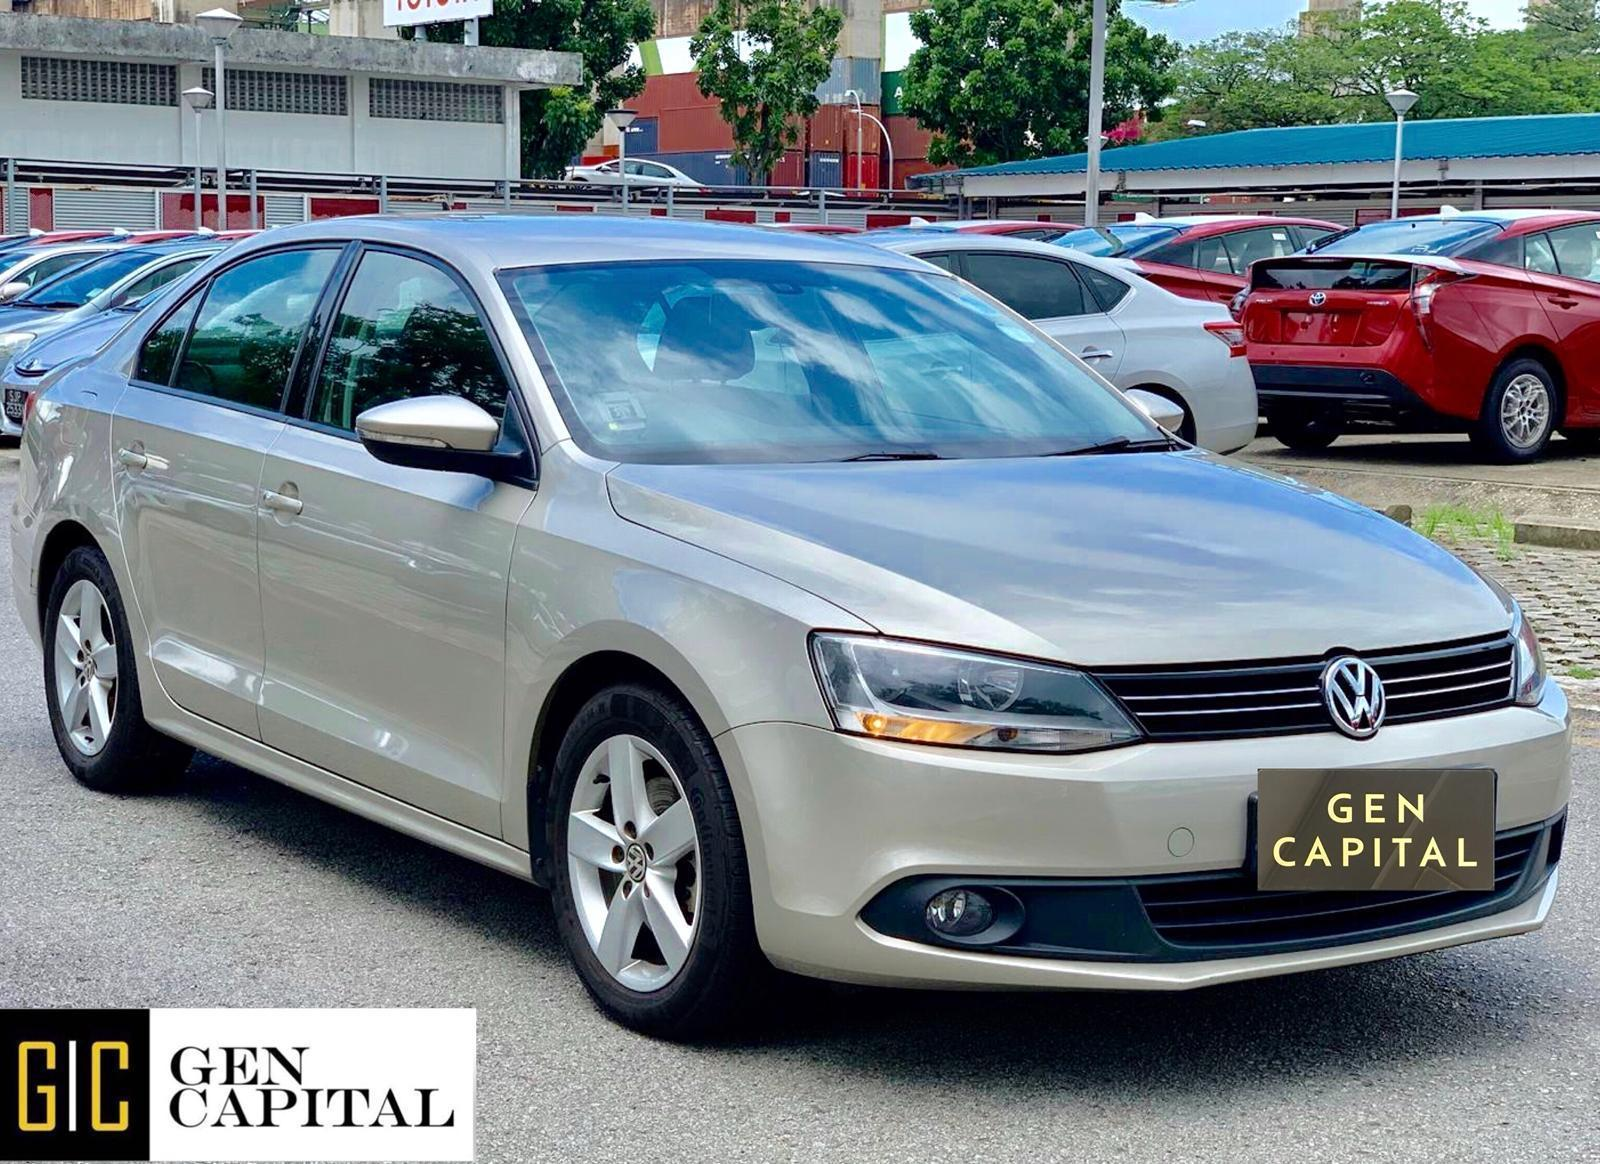 Volkswagen Jetta - Lowest rental rates, with many choices to choose from!